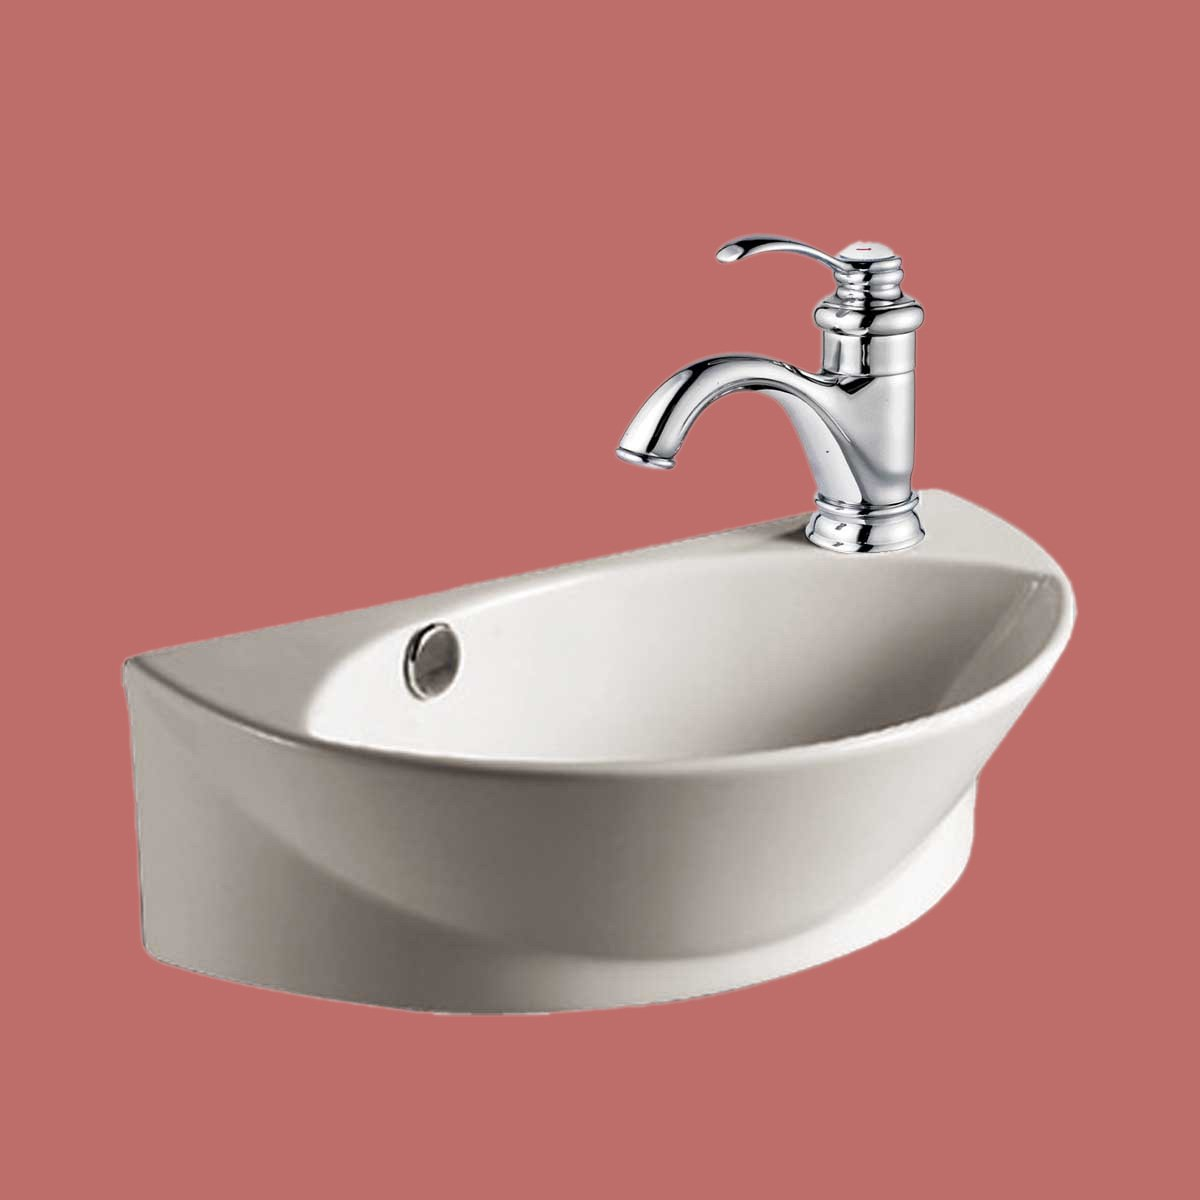 Small White Wall Mount Bathroom Vessel Sink With Single Faucet ...